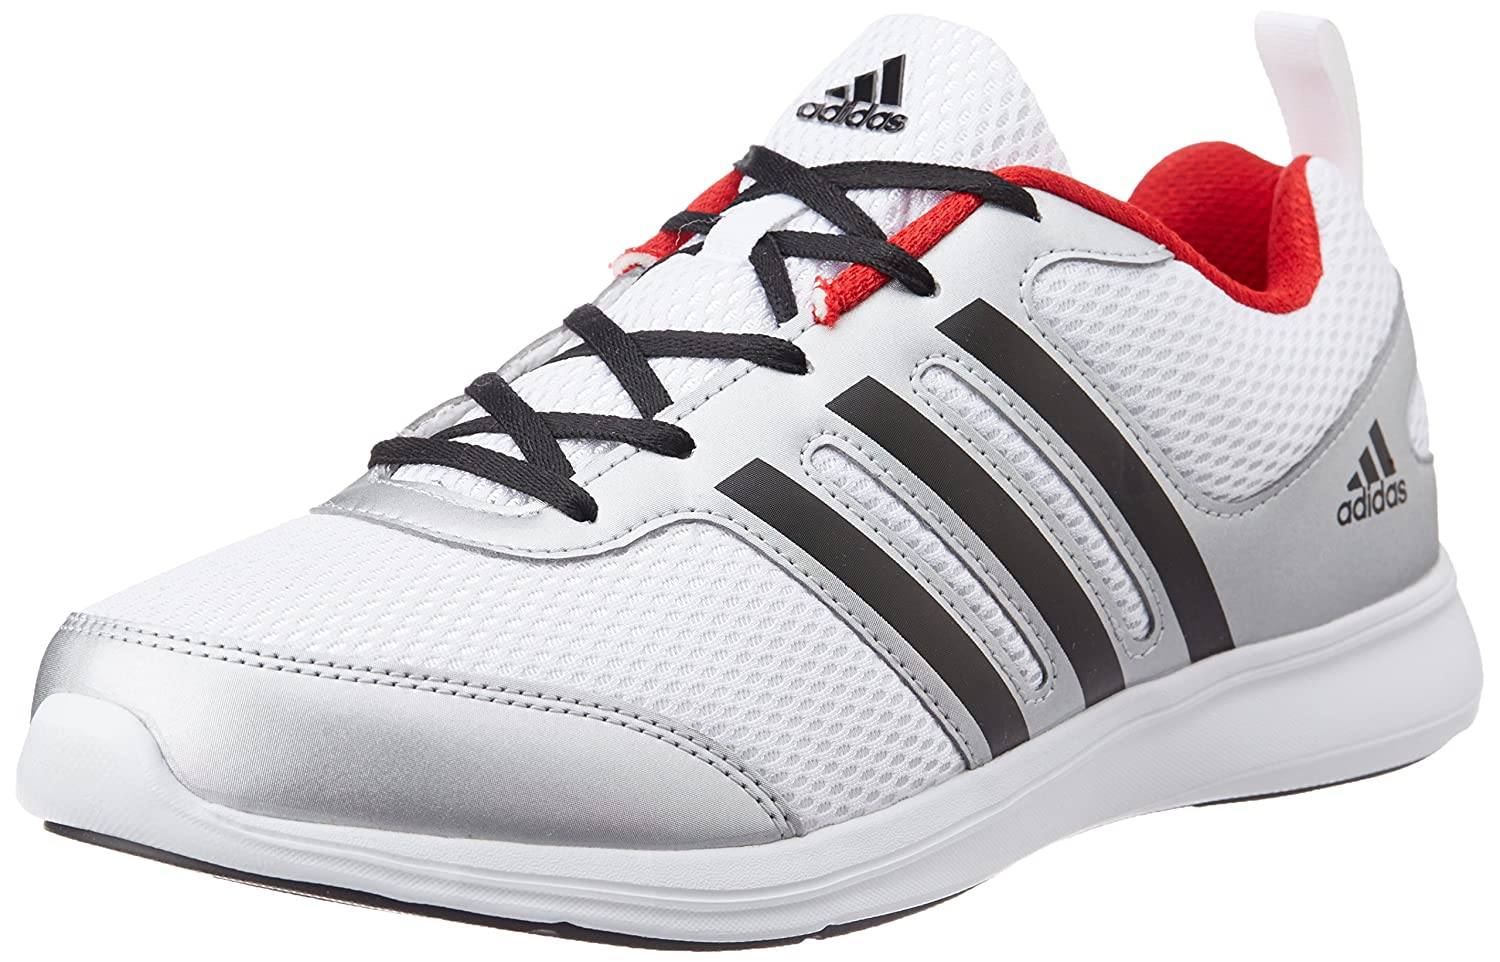 adidas Men's Yking M Running Shoes: Buy Online at Low Prices in India -  Amazon.in